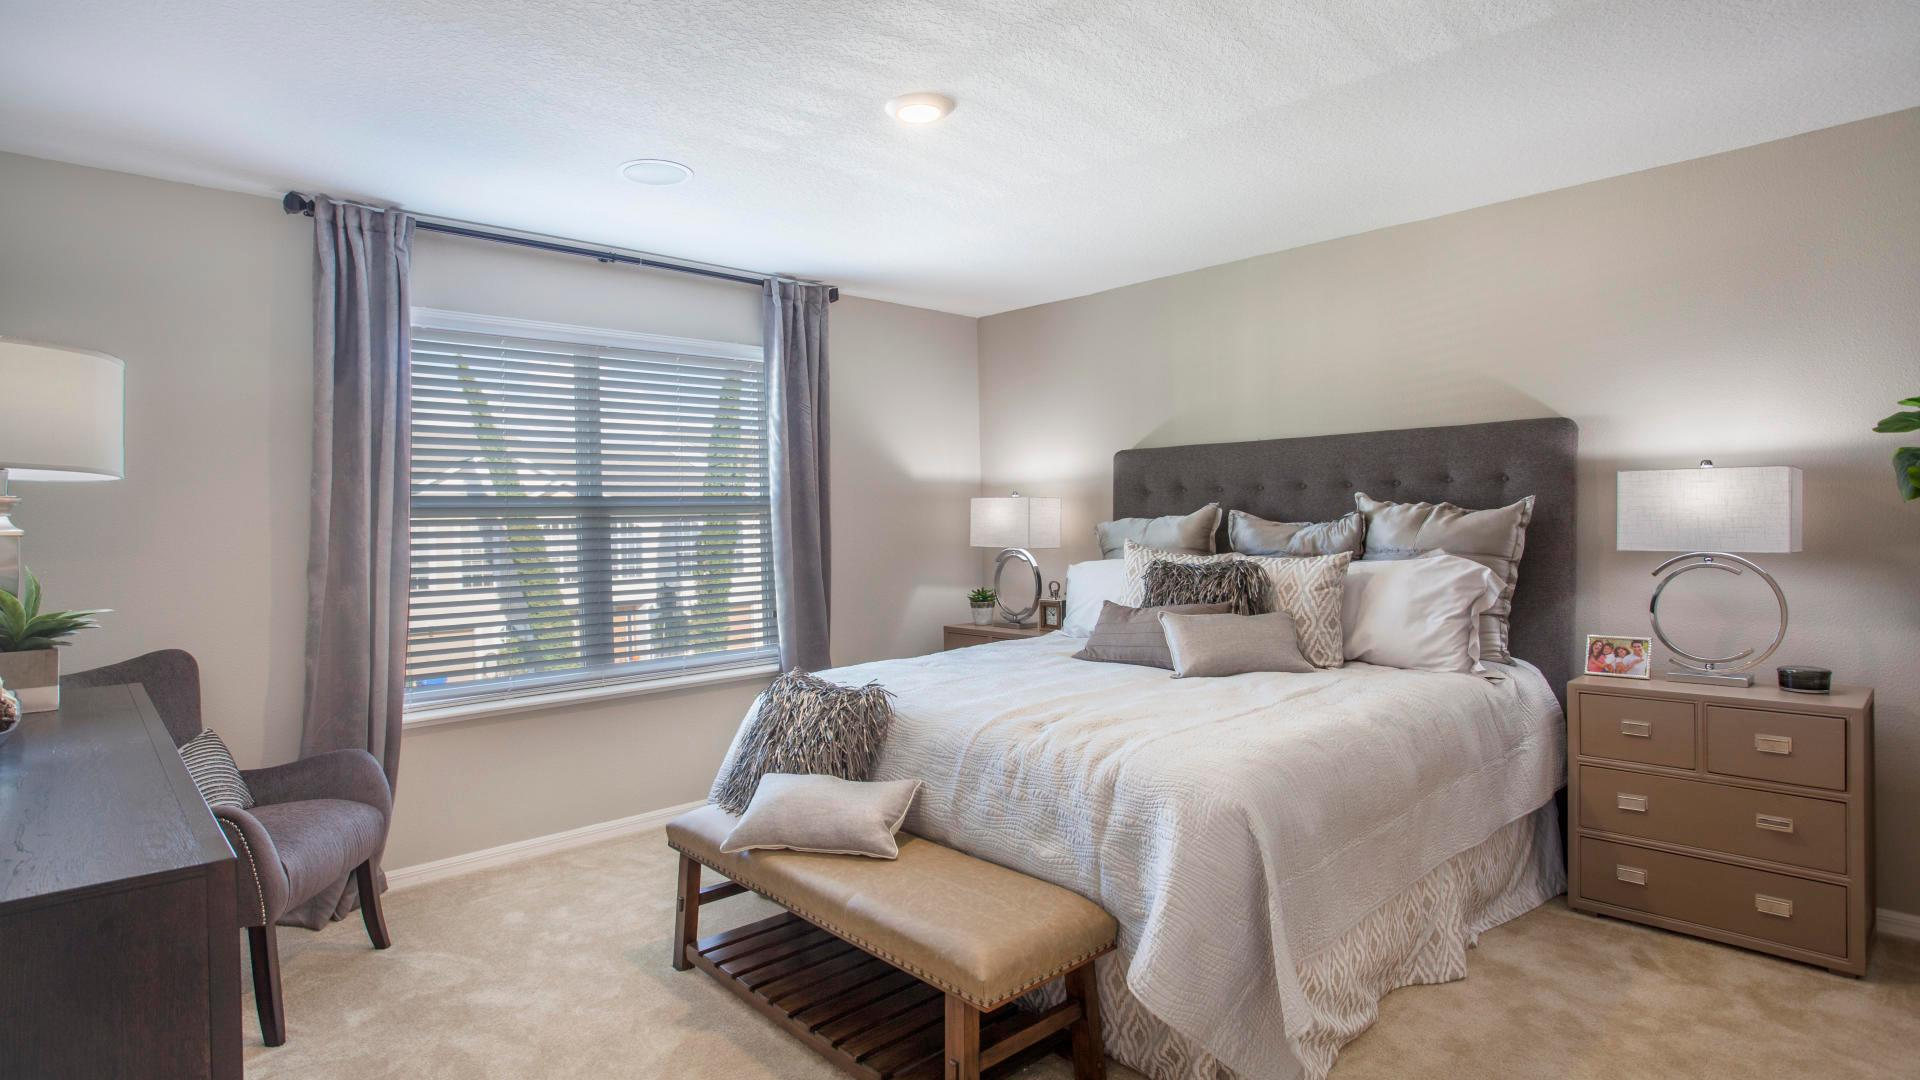 Bedroom featured in the St. Augustine By Maronda Homes in Gainesville, FL